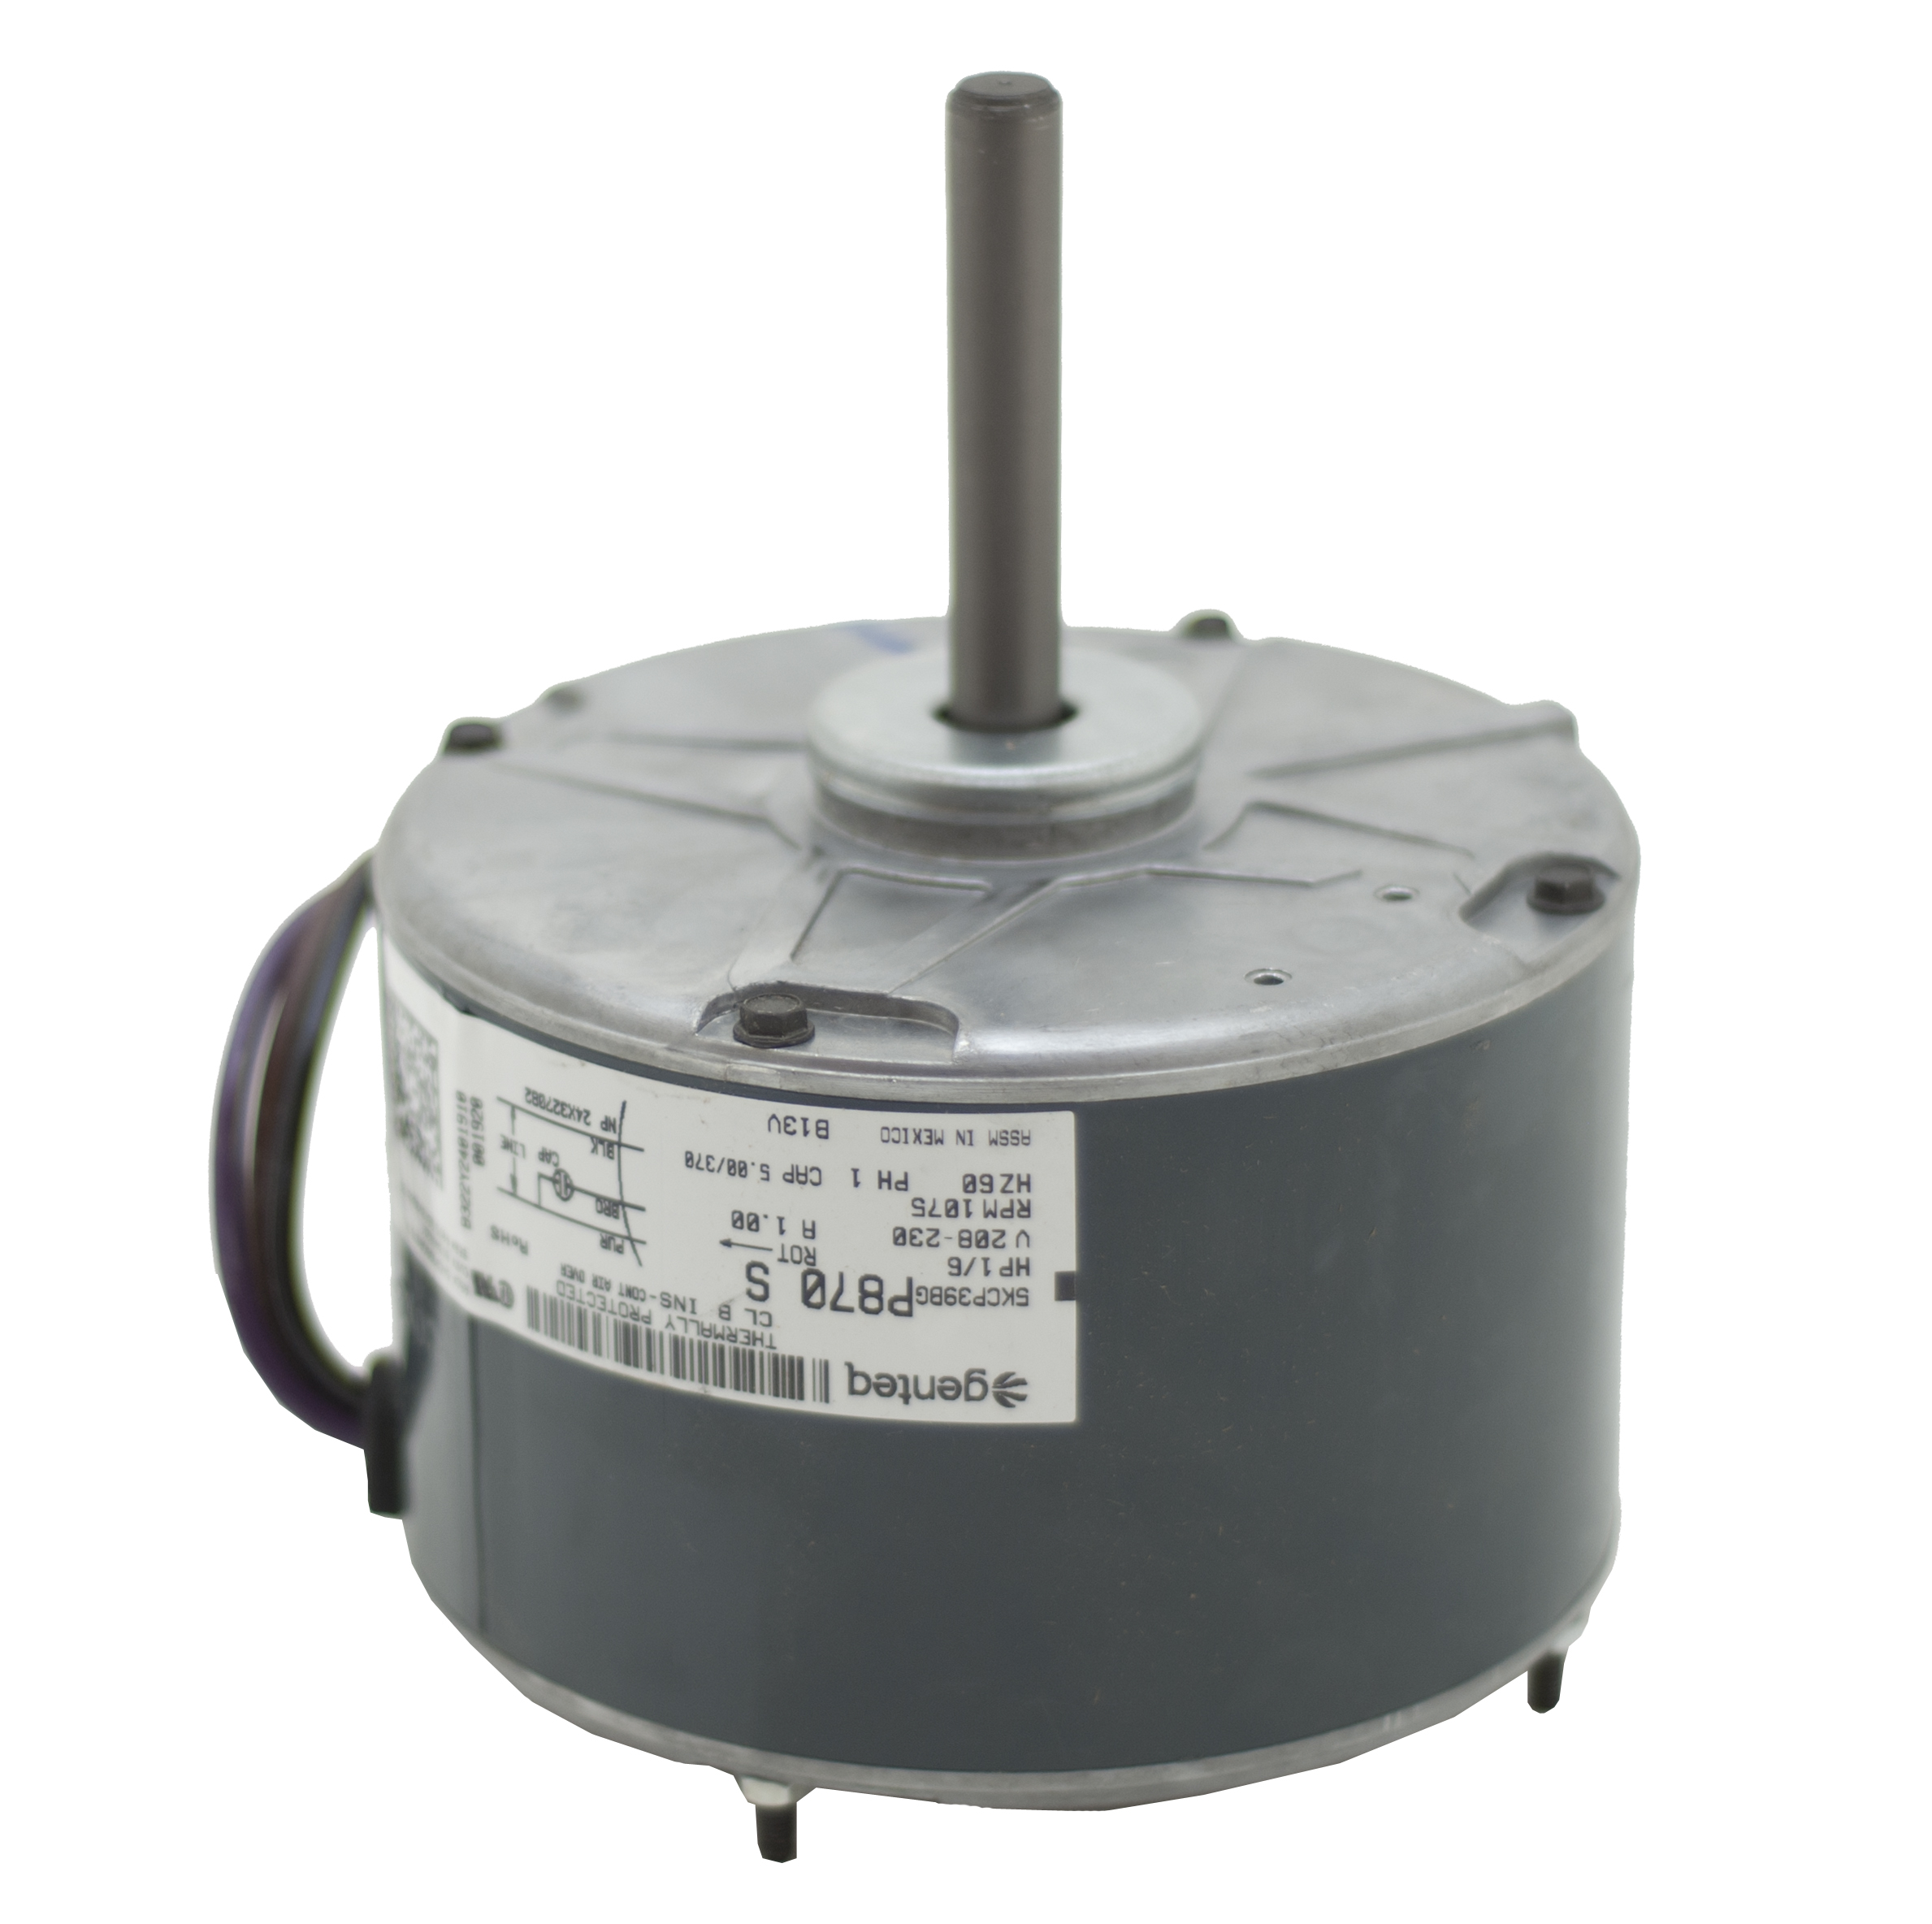 B13400251S condenser fan motor b13400251s goodman amana 1 6 hp 1 speed goodman ck24-1b wiring diagram at reclaimingppi.co